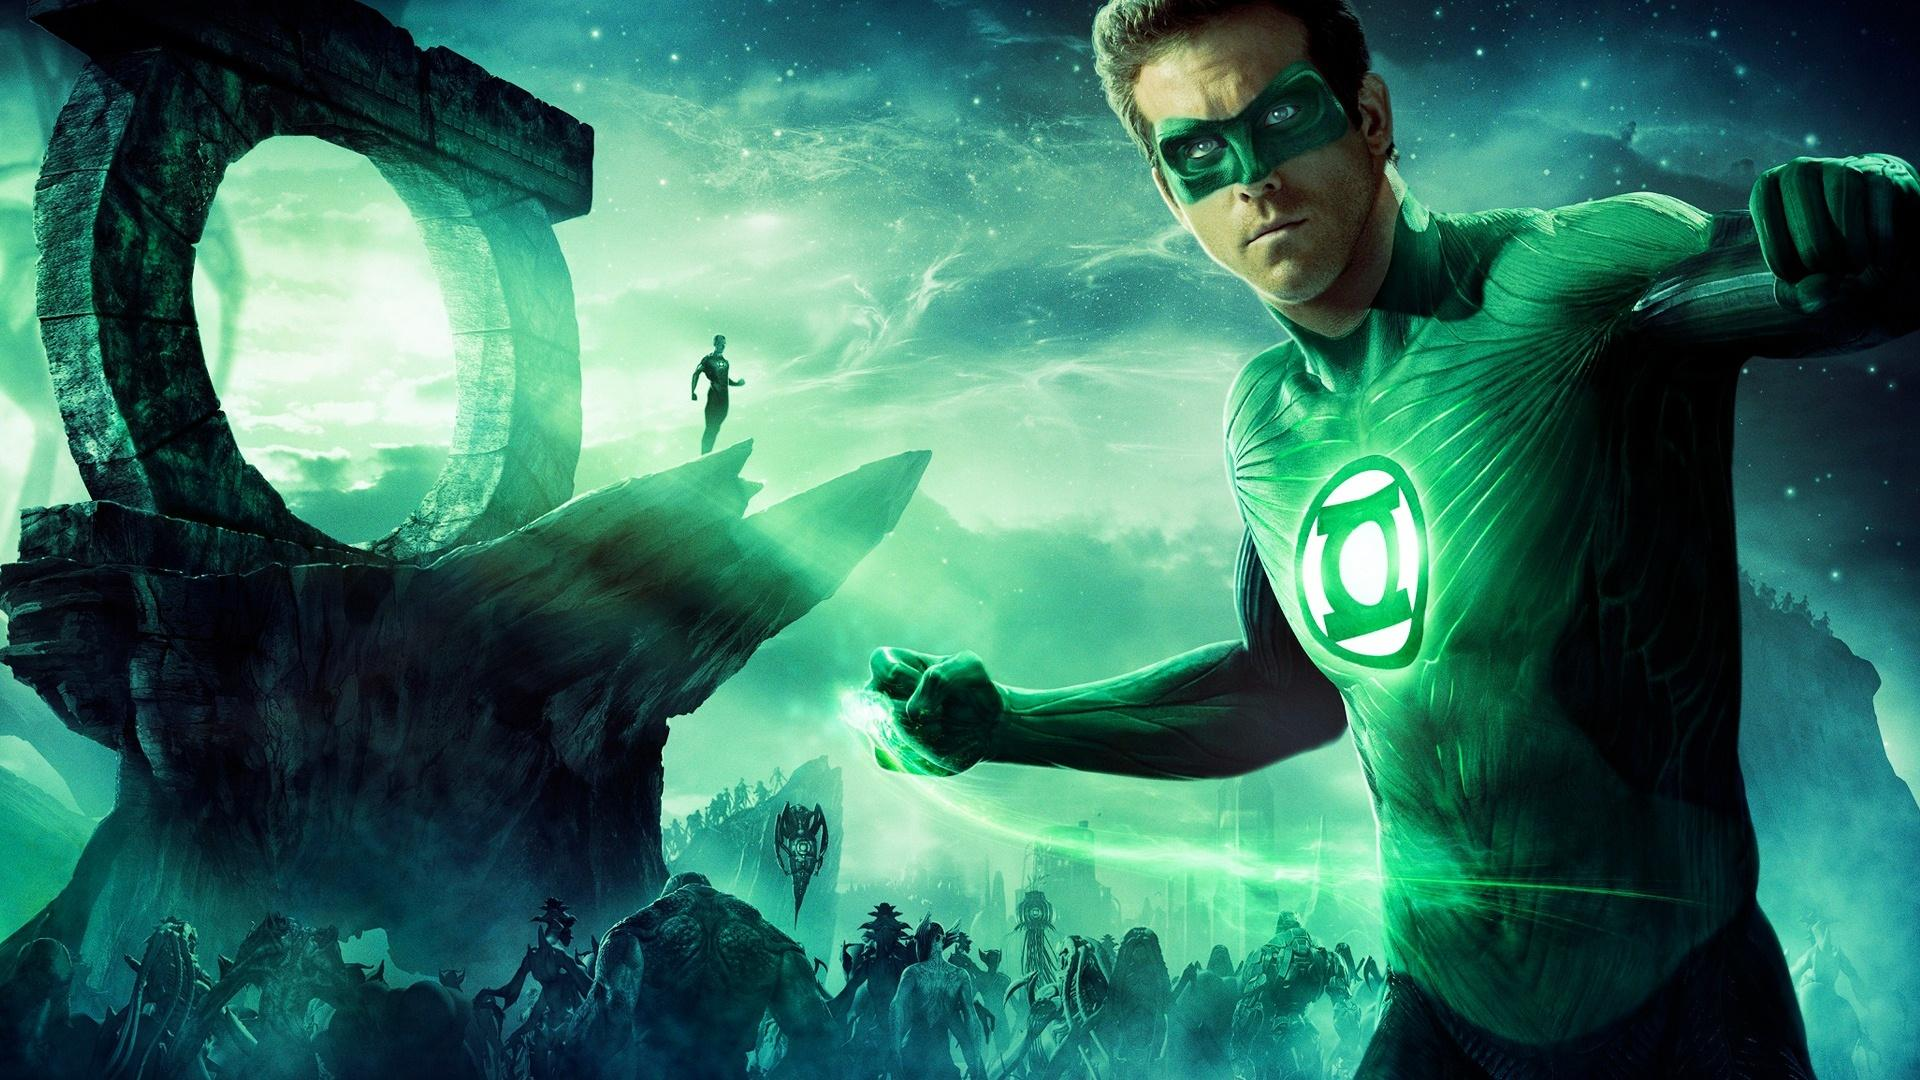 2011-Green-Lantern-Movie-Wallpaper-Desktop-HD-1920x1080.jpg (1920×1080)